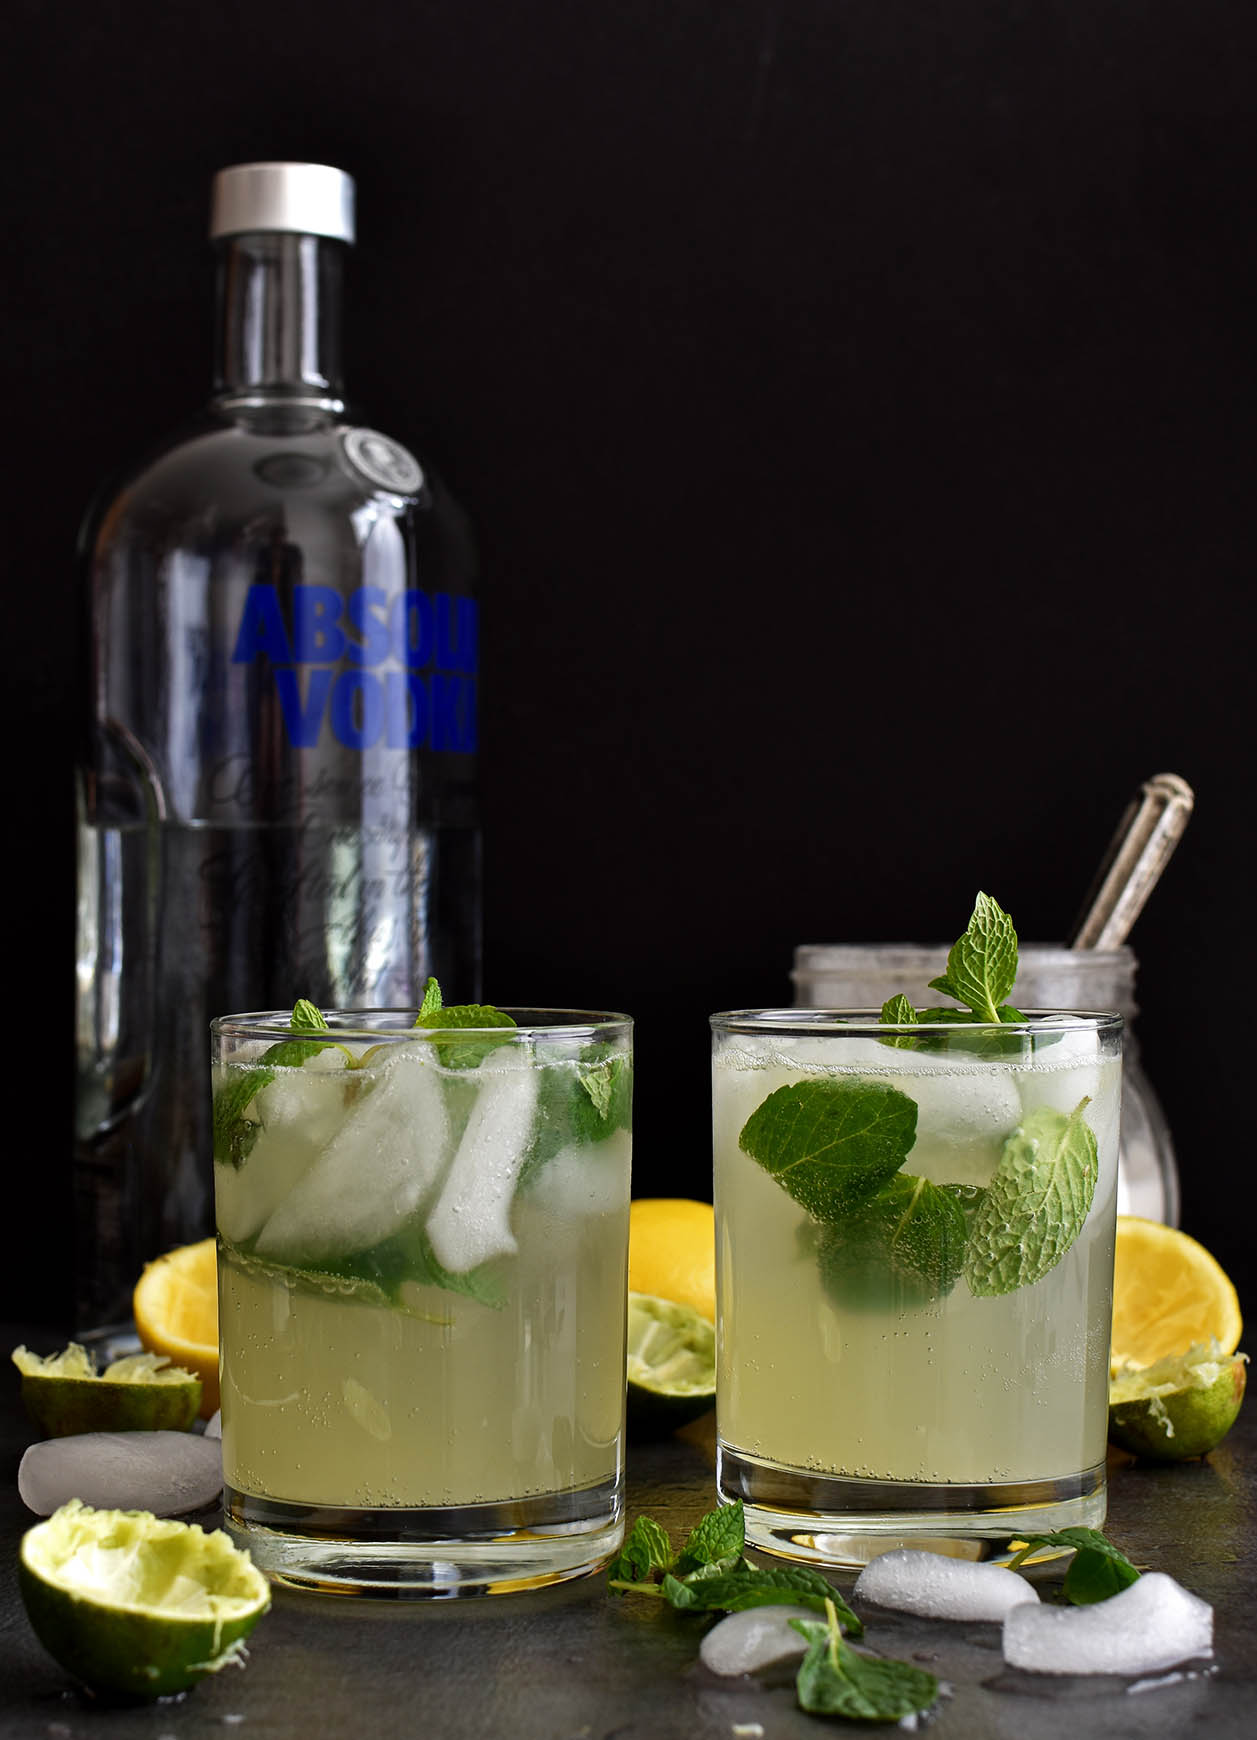 Coastal Mojito - Pepper Delight #pepperdelightblog #recipe #drink #mojito #summerdrink #cocktail #festival #classicmojito #cuban #vodkamojito #partydrink #gameday #vodka #sprite